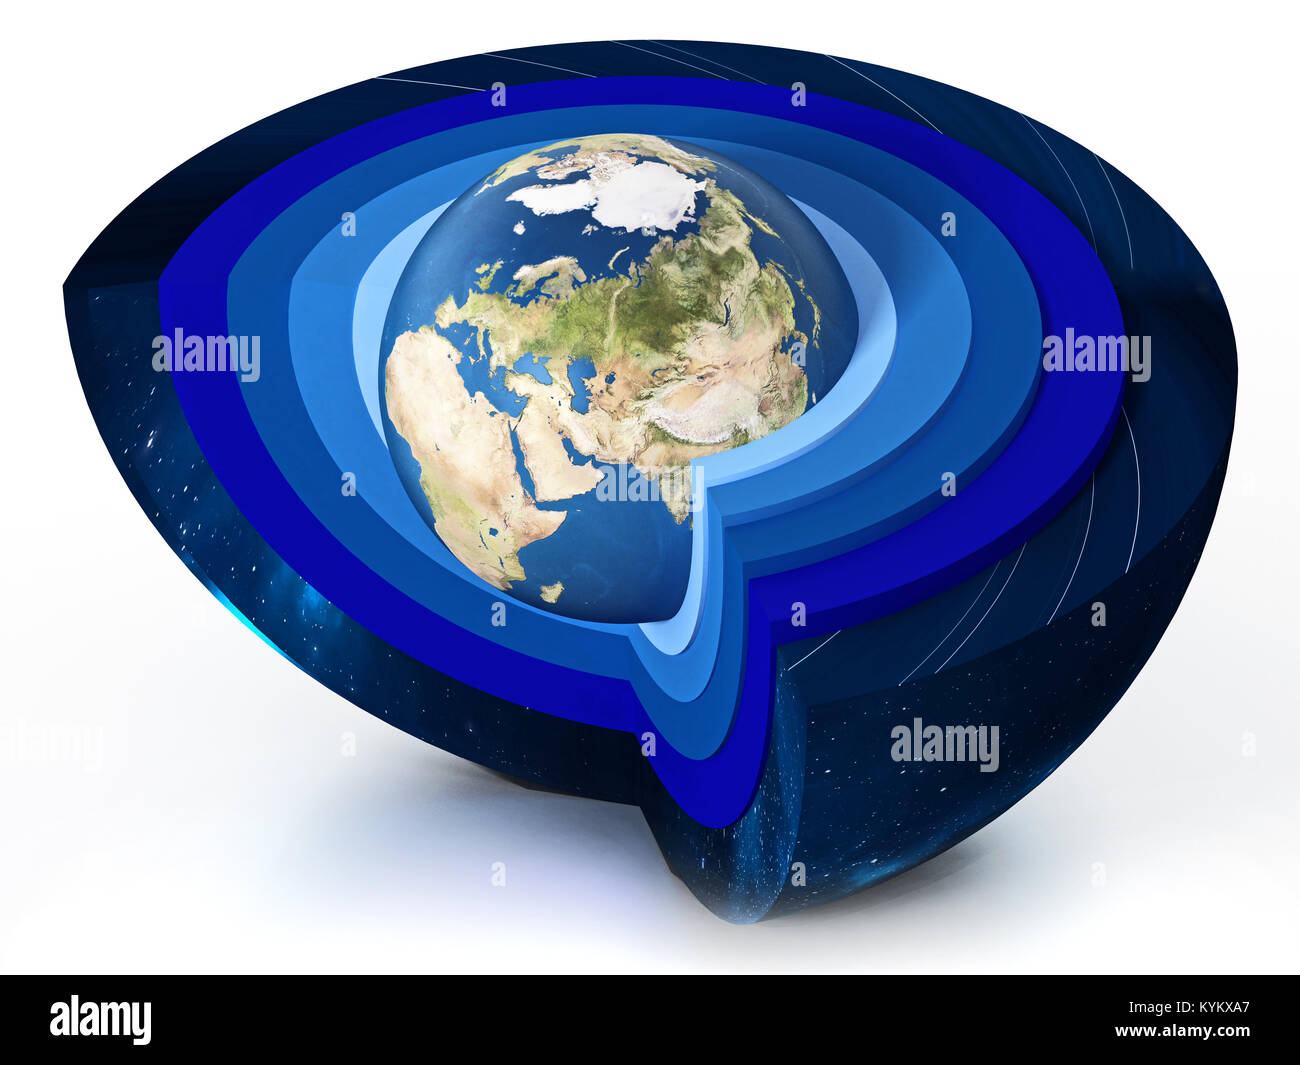 Earth levels of atmosphere diagram. 3D illustration. - Stock Image